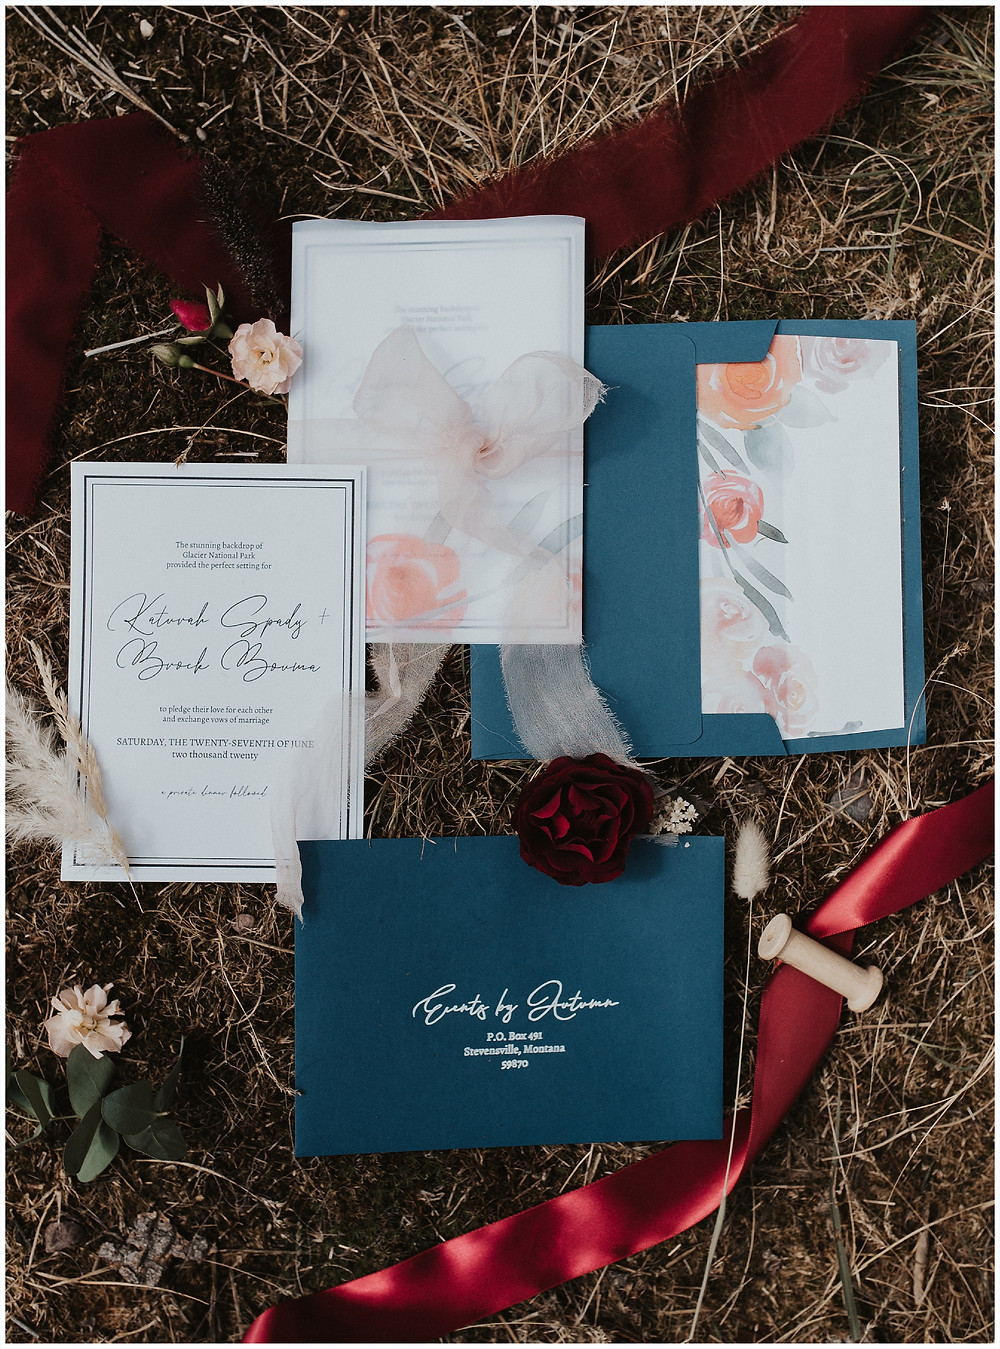 wedding stationary, Glacier National Park, Elegant and Romantic Styled Elopement, Katy Shay Photo, Montana Wedding and Elopement Photographer, Glacier National Park Photographer, Moody photos, glamorous wedding, Navy, maroon, coral, lace wedding dress, Bozeman photographer, Missoula photographer, Kalispell photographer, Glacier NP, Bowman Lake